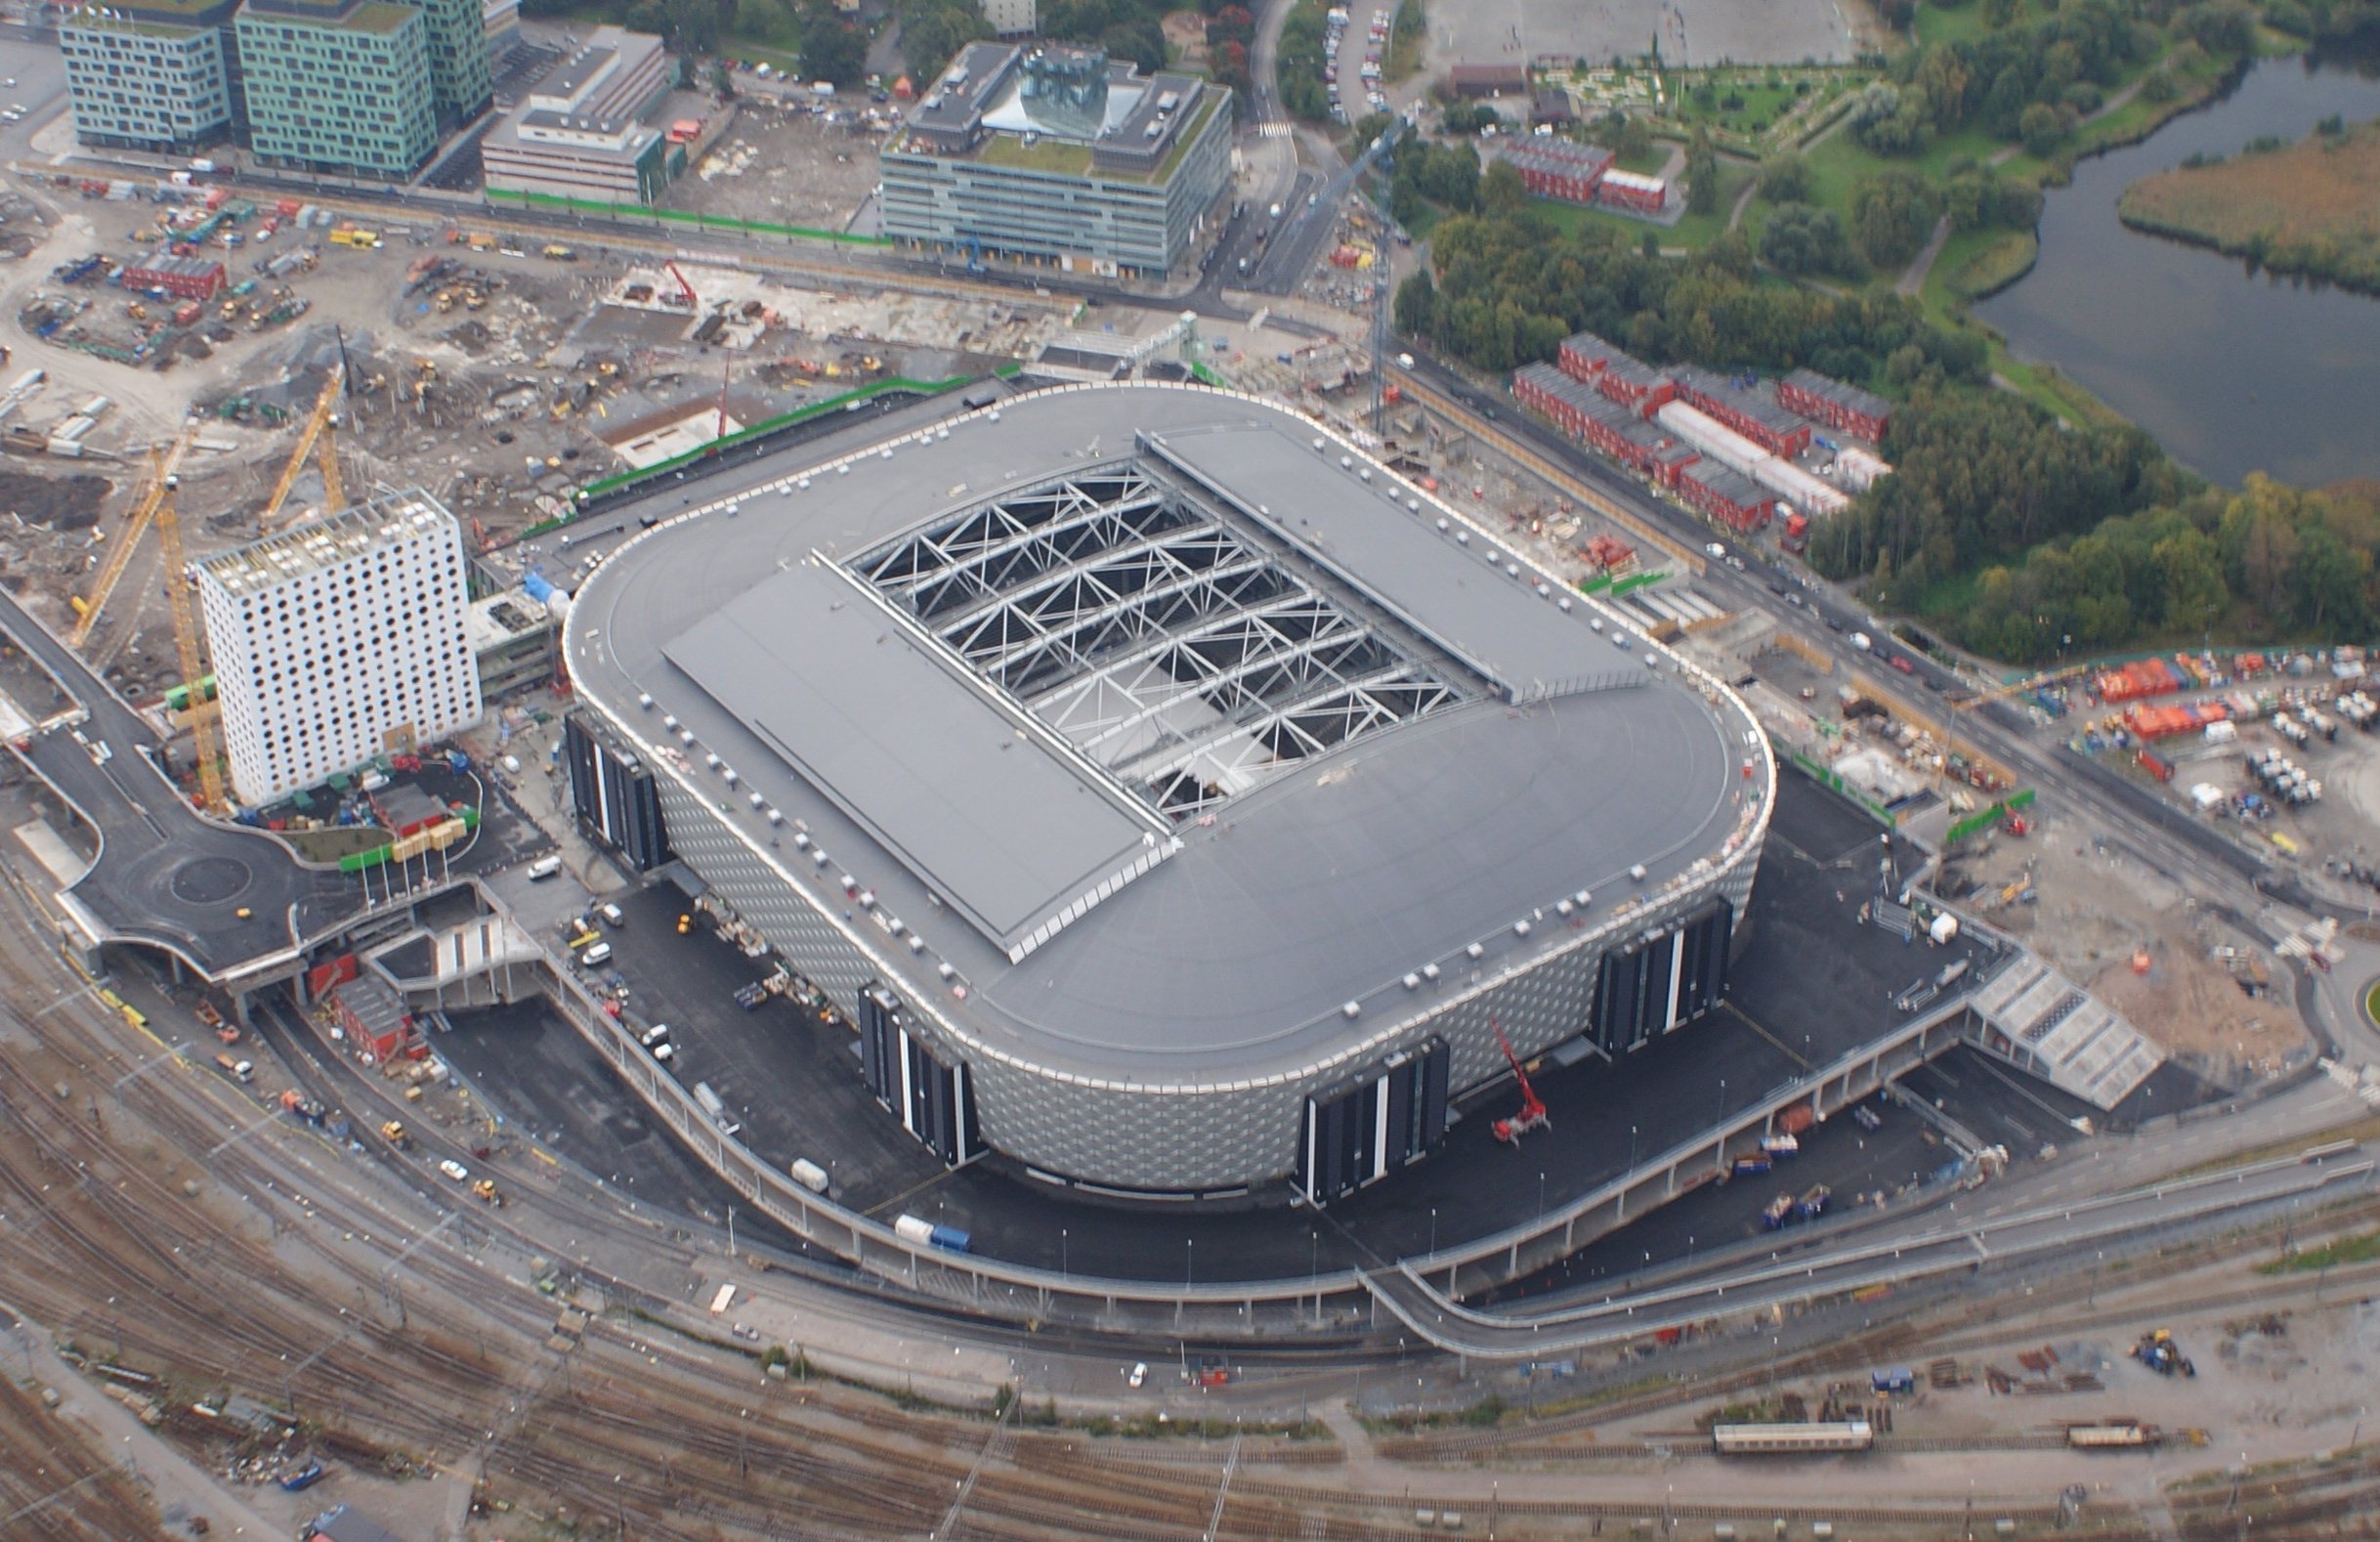 File:Friends arena 1.JPG